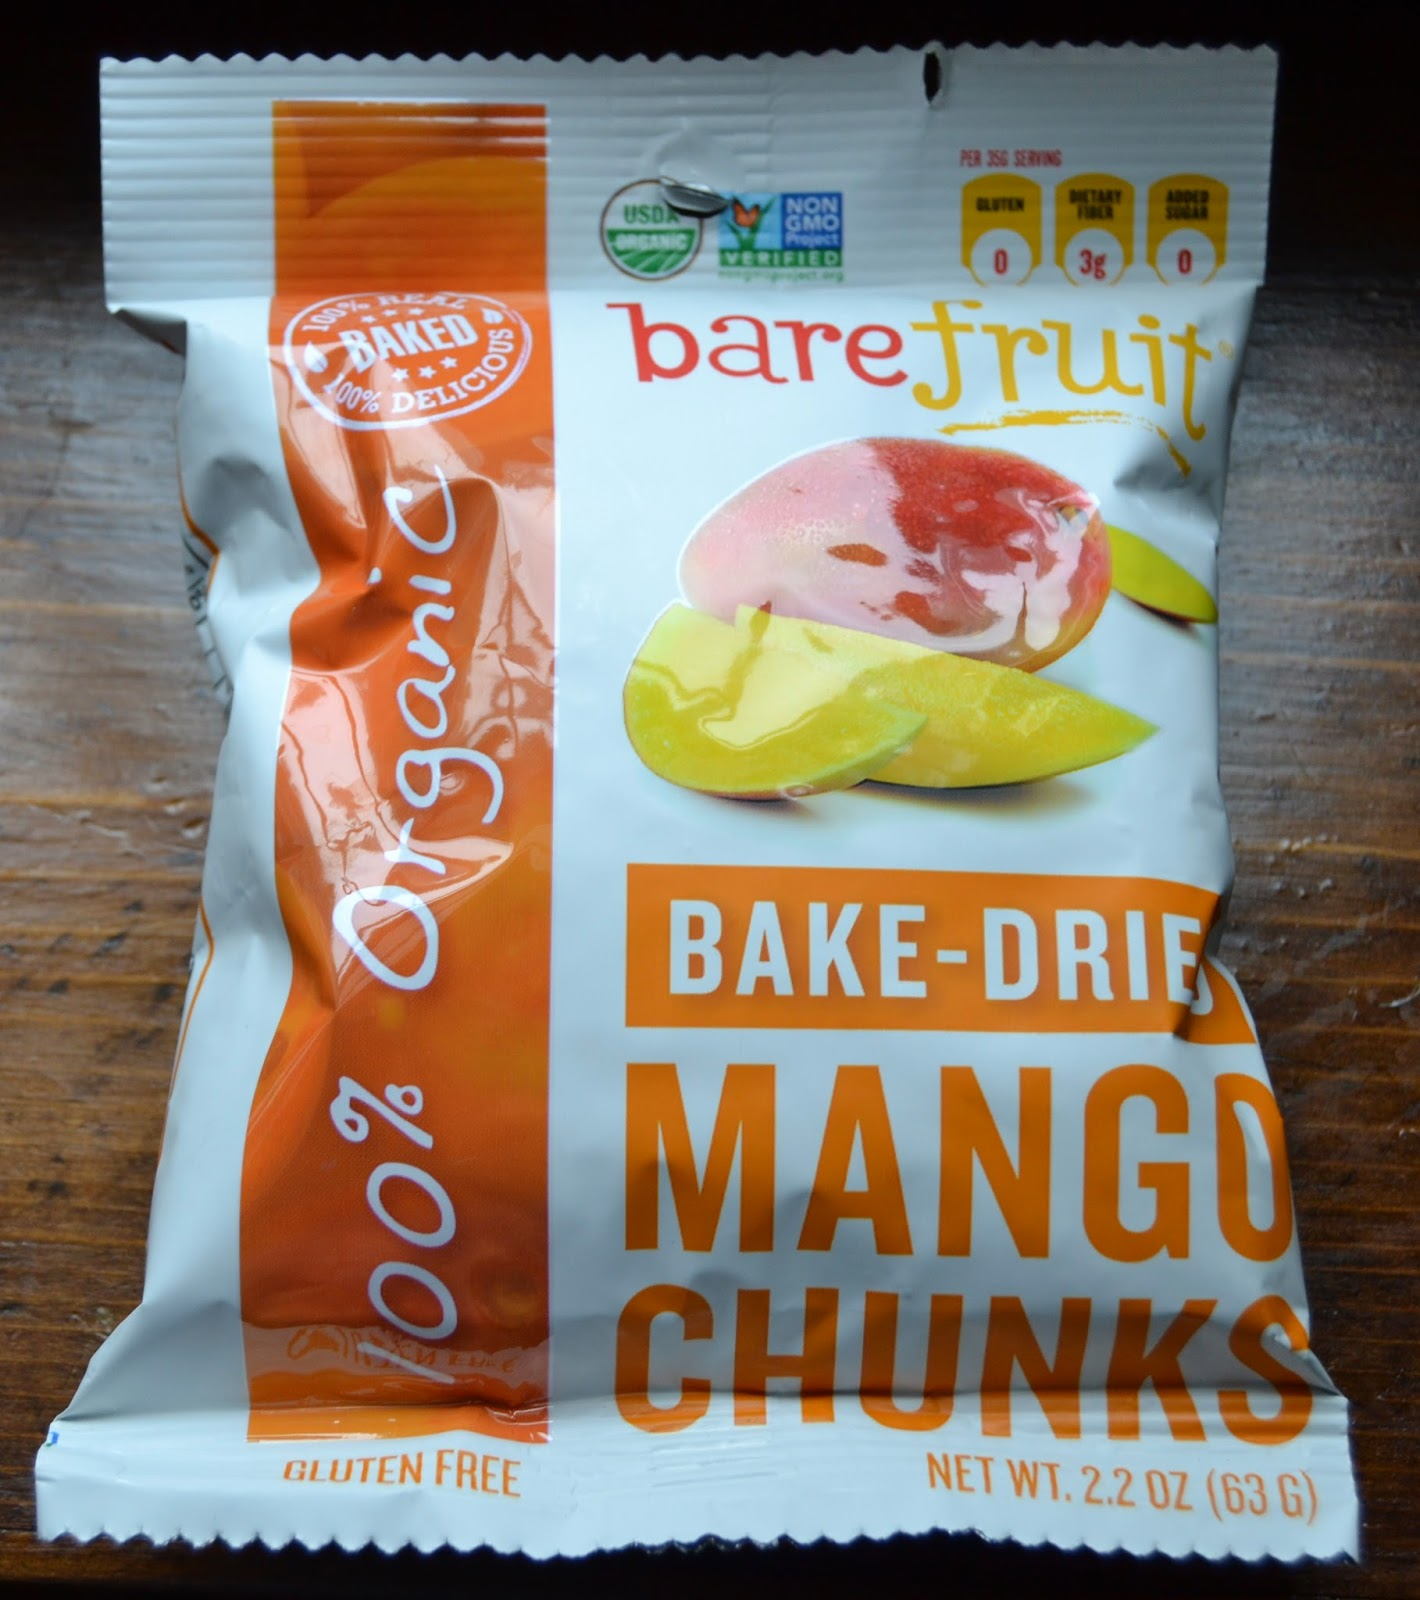 Bare Fruit Bake-Dried Mango Chunks